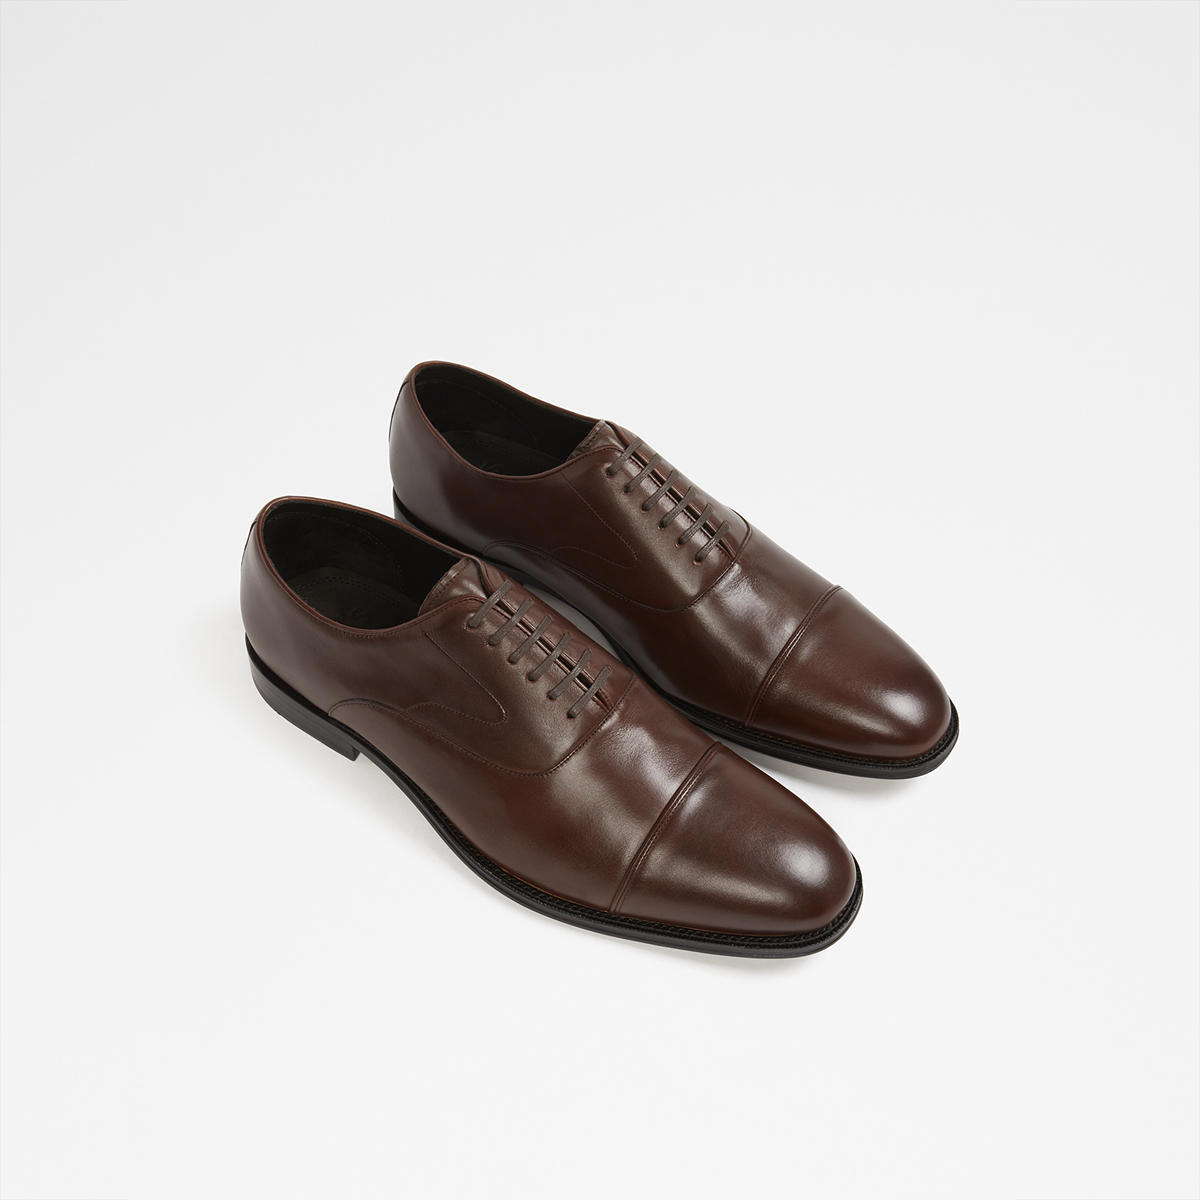 Aldo Dress Shoes Canada